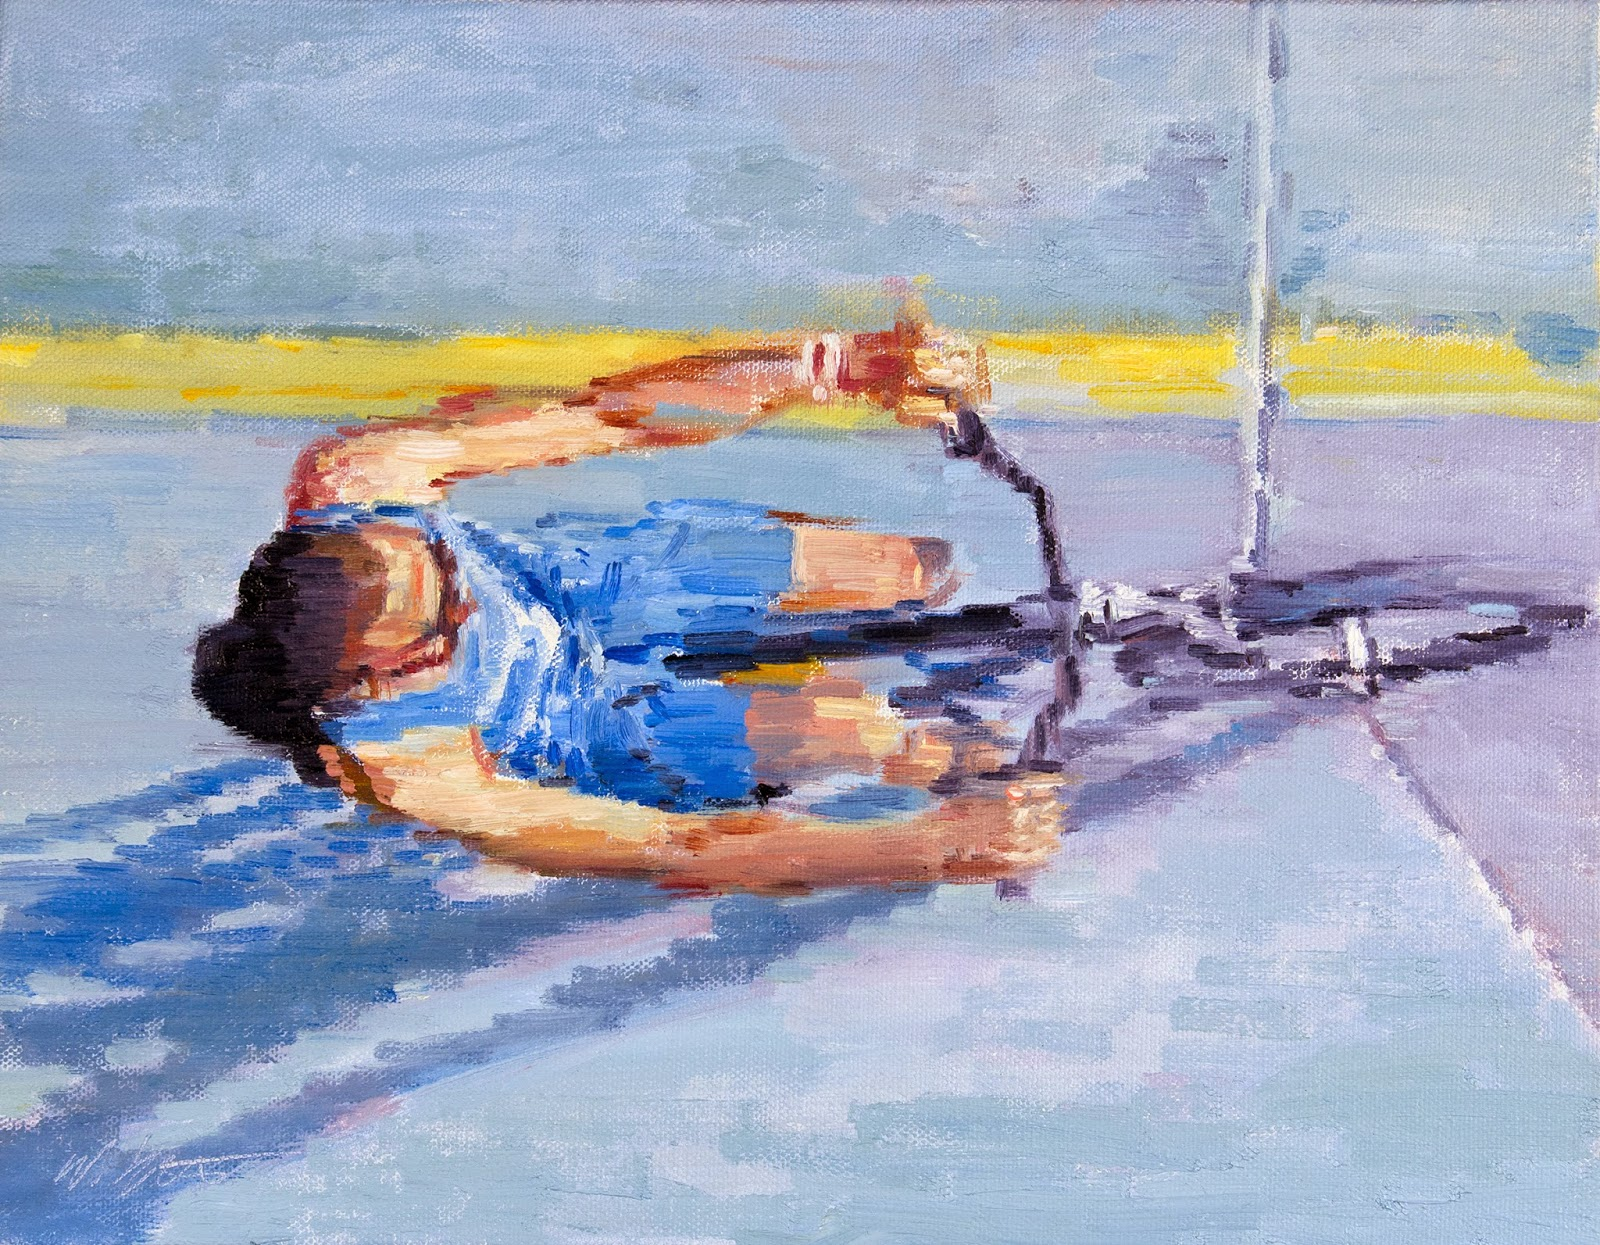 http://www.ugallery.com/oil-painting-man-bicycling-on-the-beach-in-santa-monica